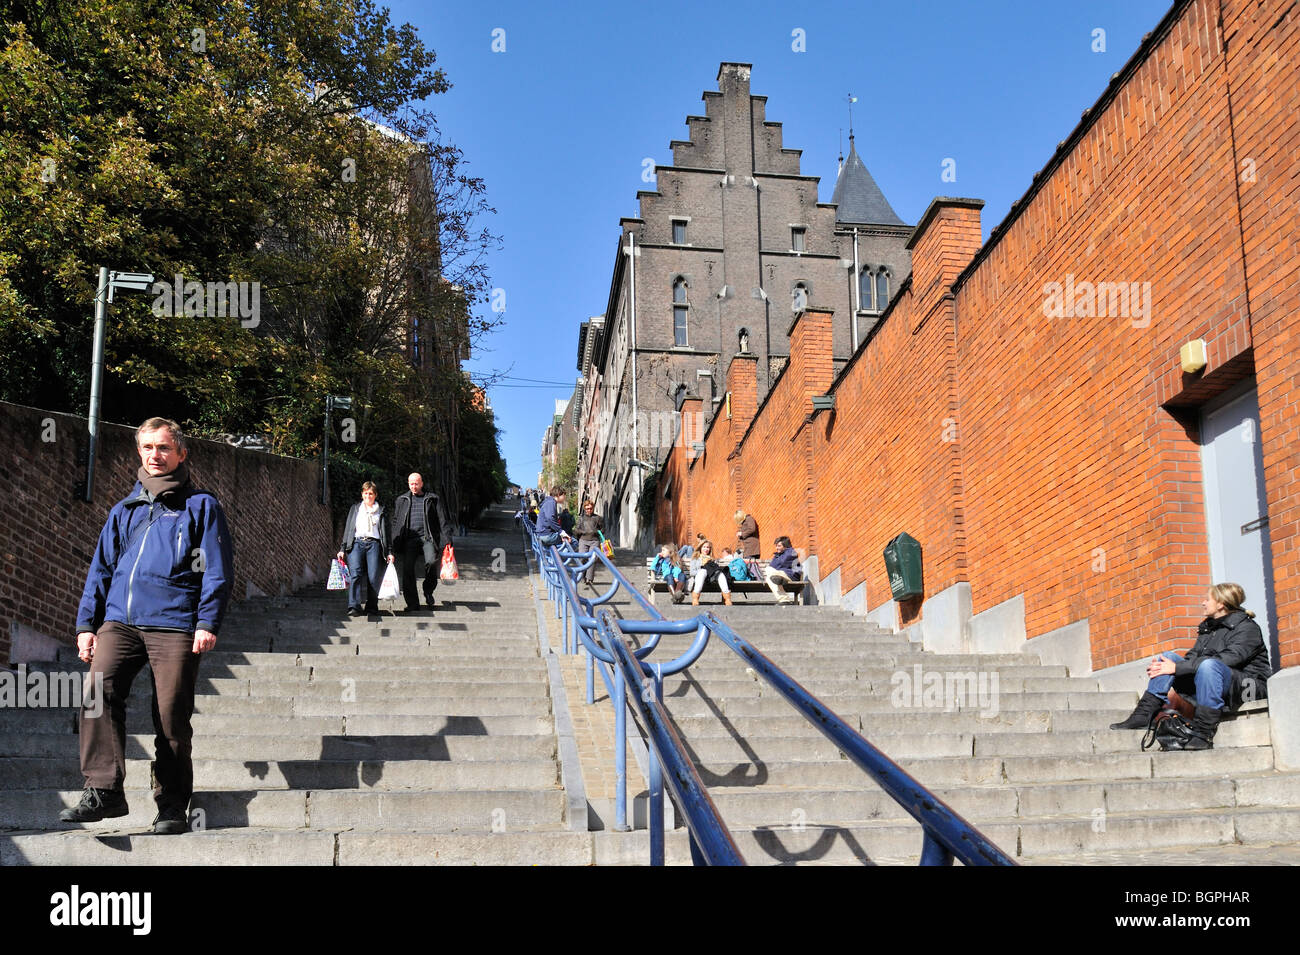 The stairway Montagne de Bueren counts 374 steps, Liège, Belgium - Stock Image